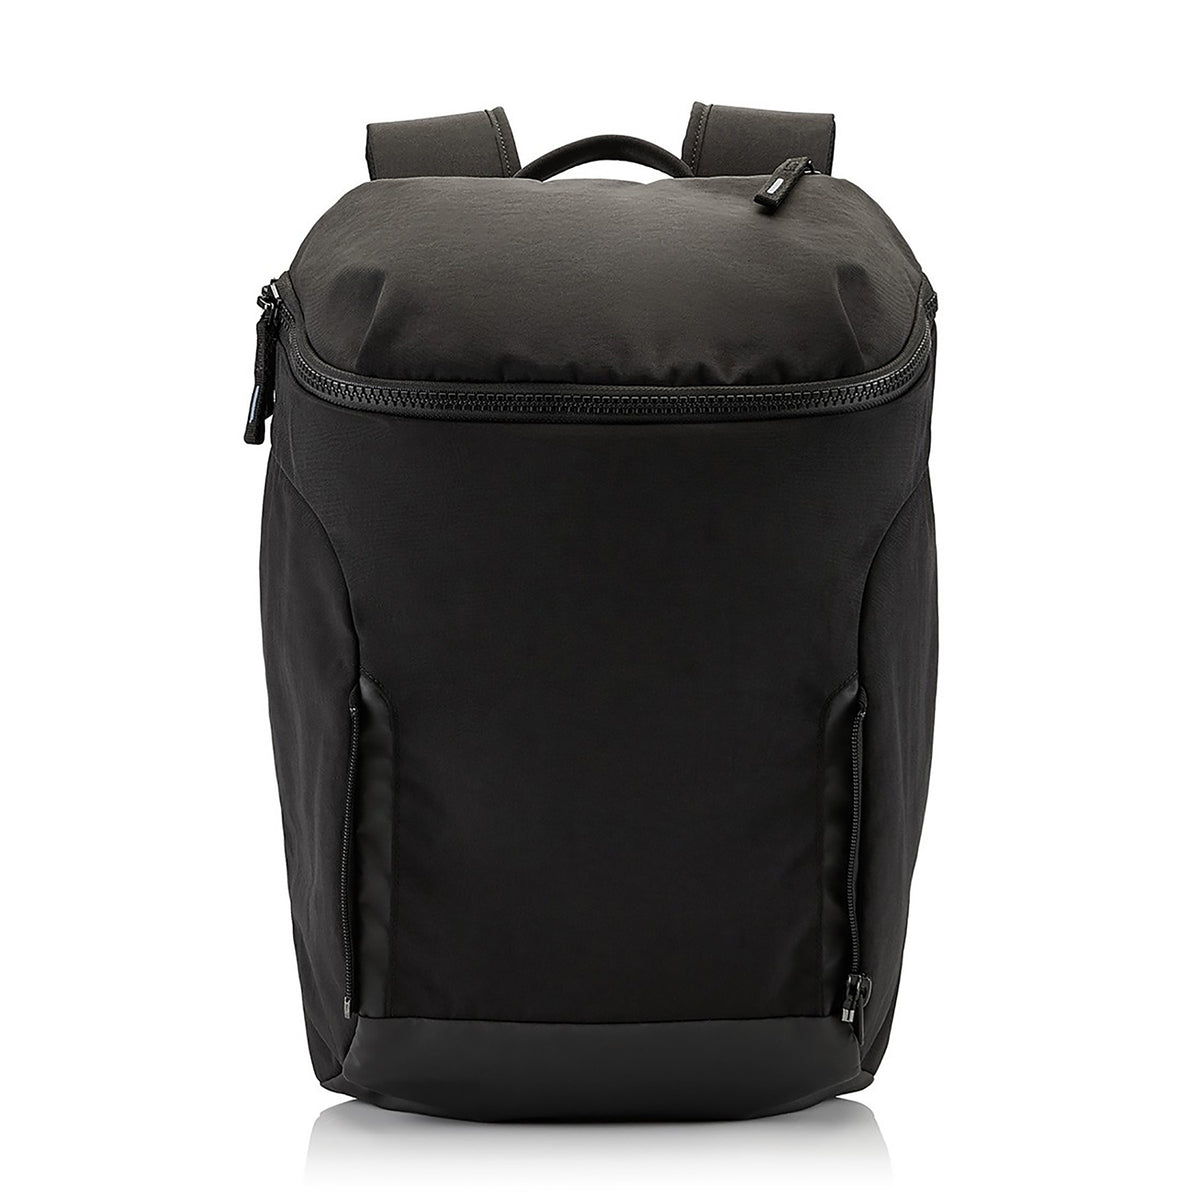 Crumpler: Reclaimed Ruck Backpack - Black